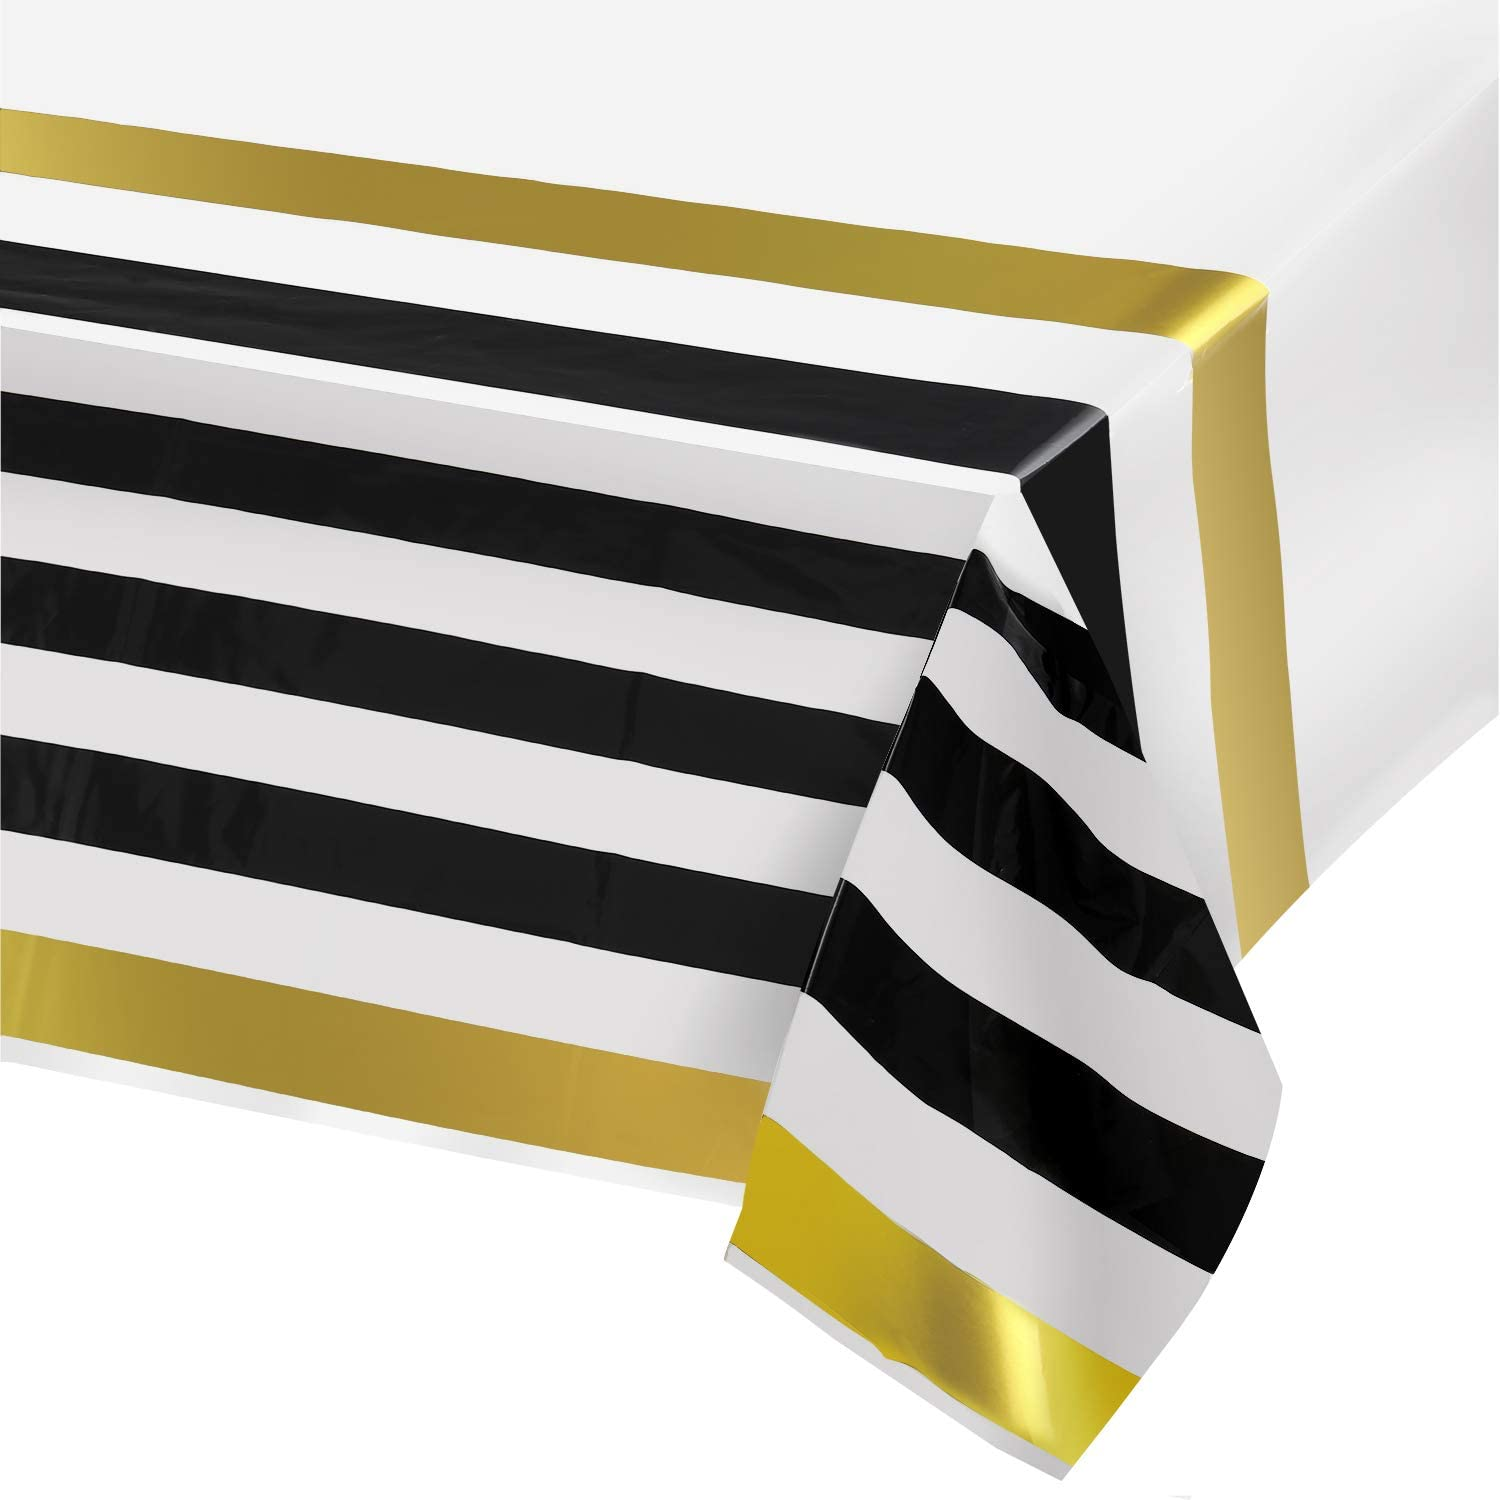 Graduation Plastic Tablecloths for Rectangle Tables,- 2 Pack - Party Table Cloths Disposable, Black and Gold Rectangular Table Covers, for Parties Wedding, Bridel - Babey Shower